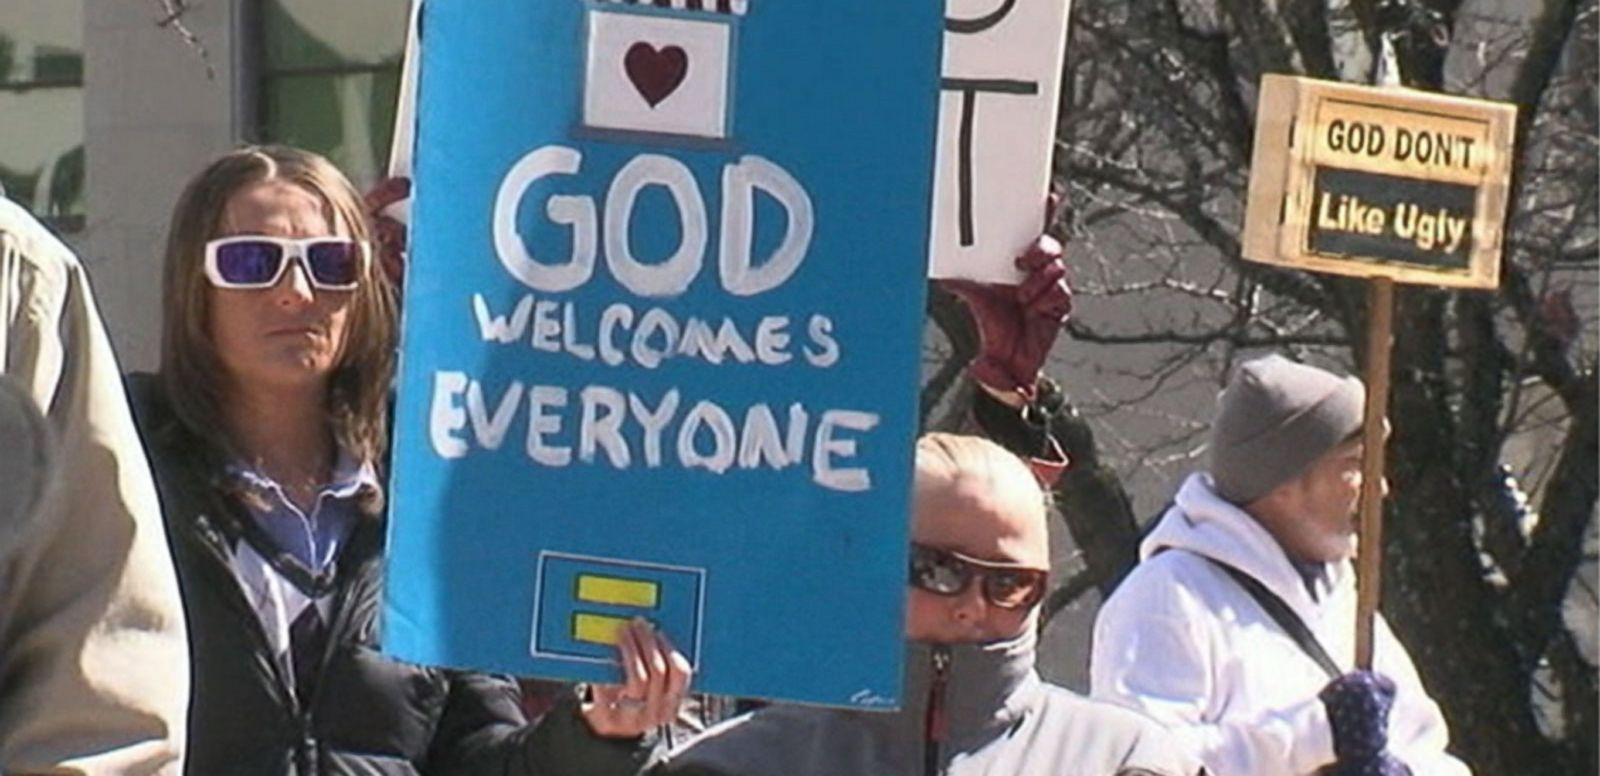 VIDEO: Backlash in Indiana over Controversial Religious Freedom Law